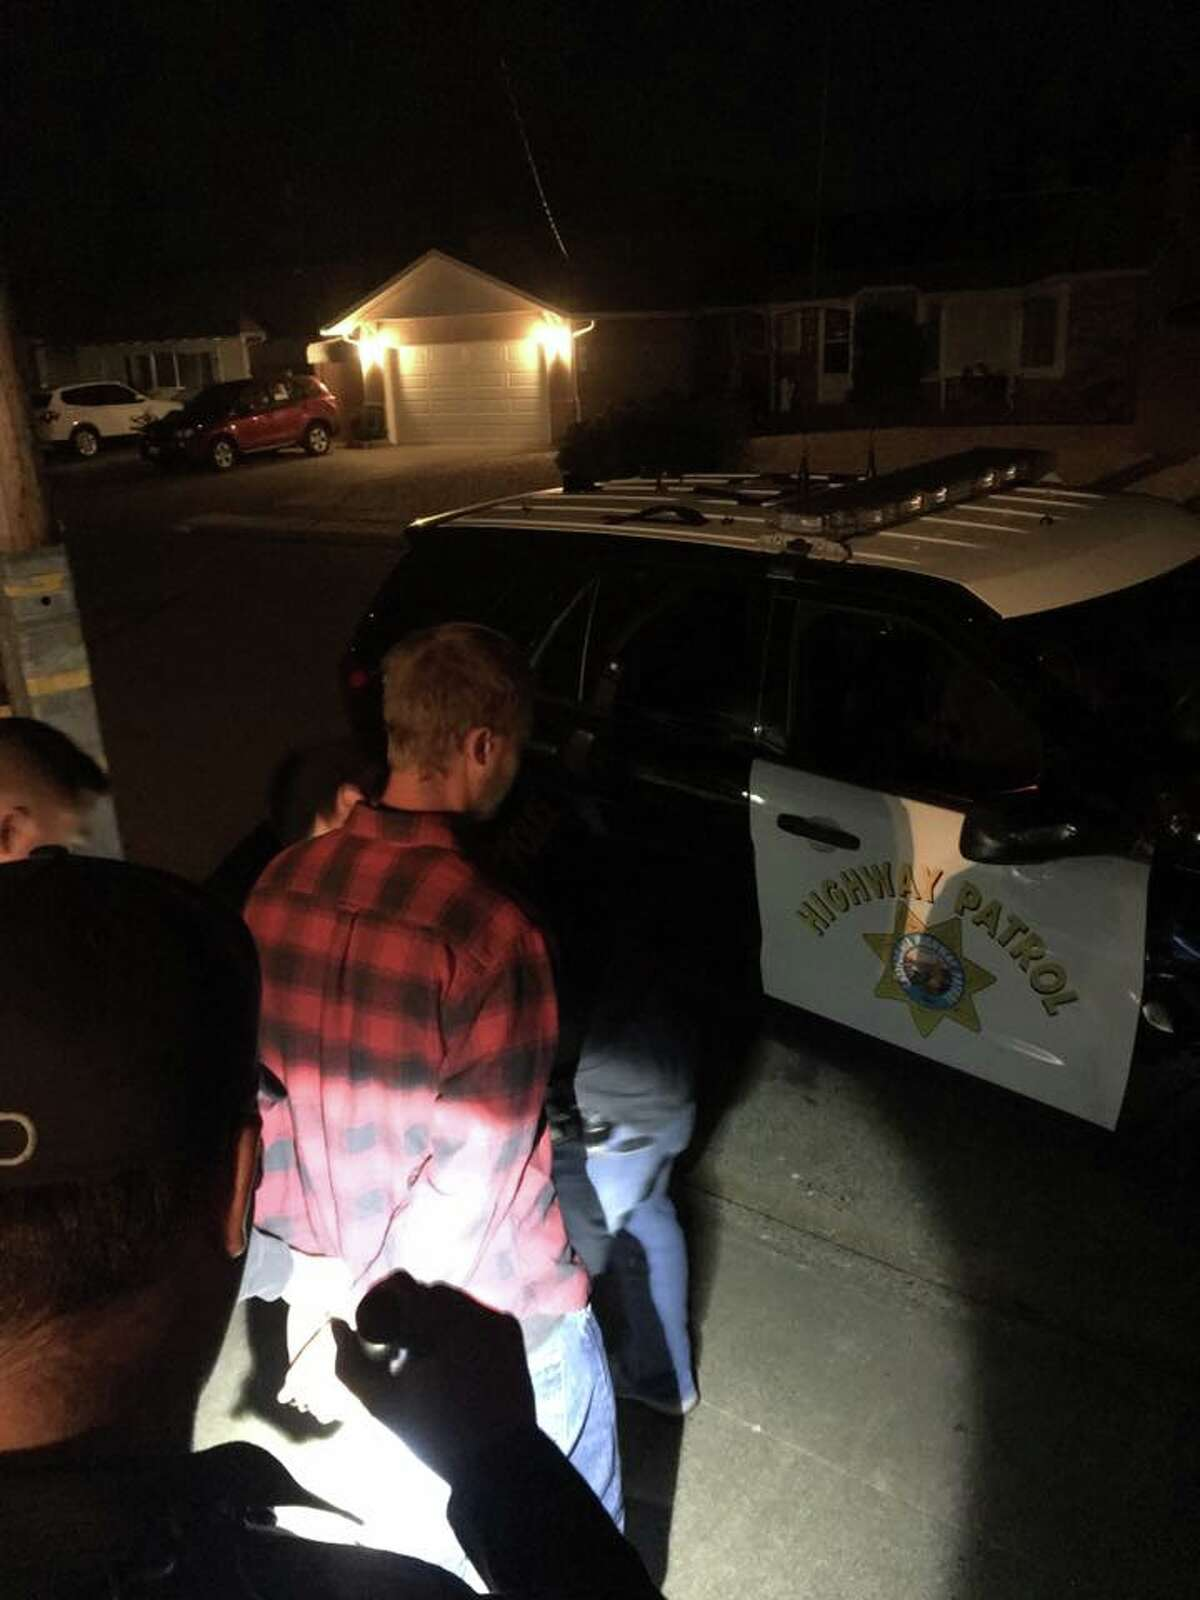 Four cyclists were injured, one severely, Saturday in rural Marin County when the driver of a pickup struck slammed his vehicle into the group and then took off without stopping. CHP Marin arrested a suspect in Novato.